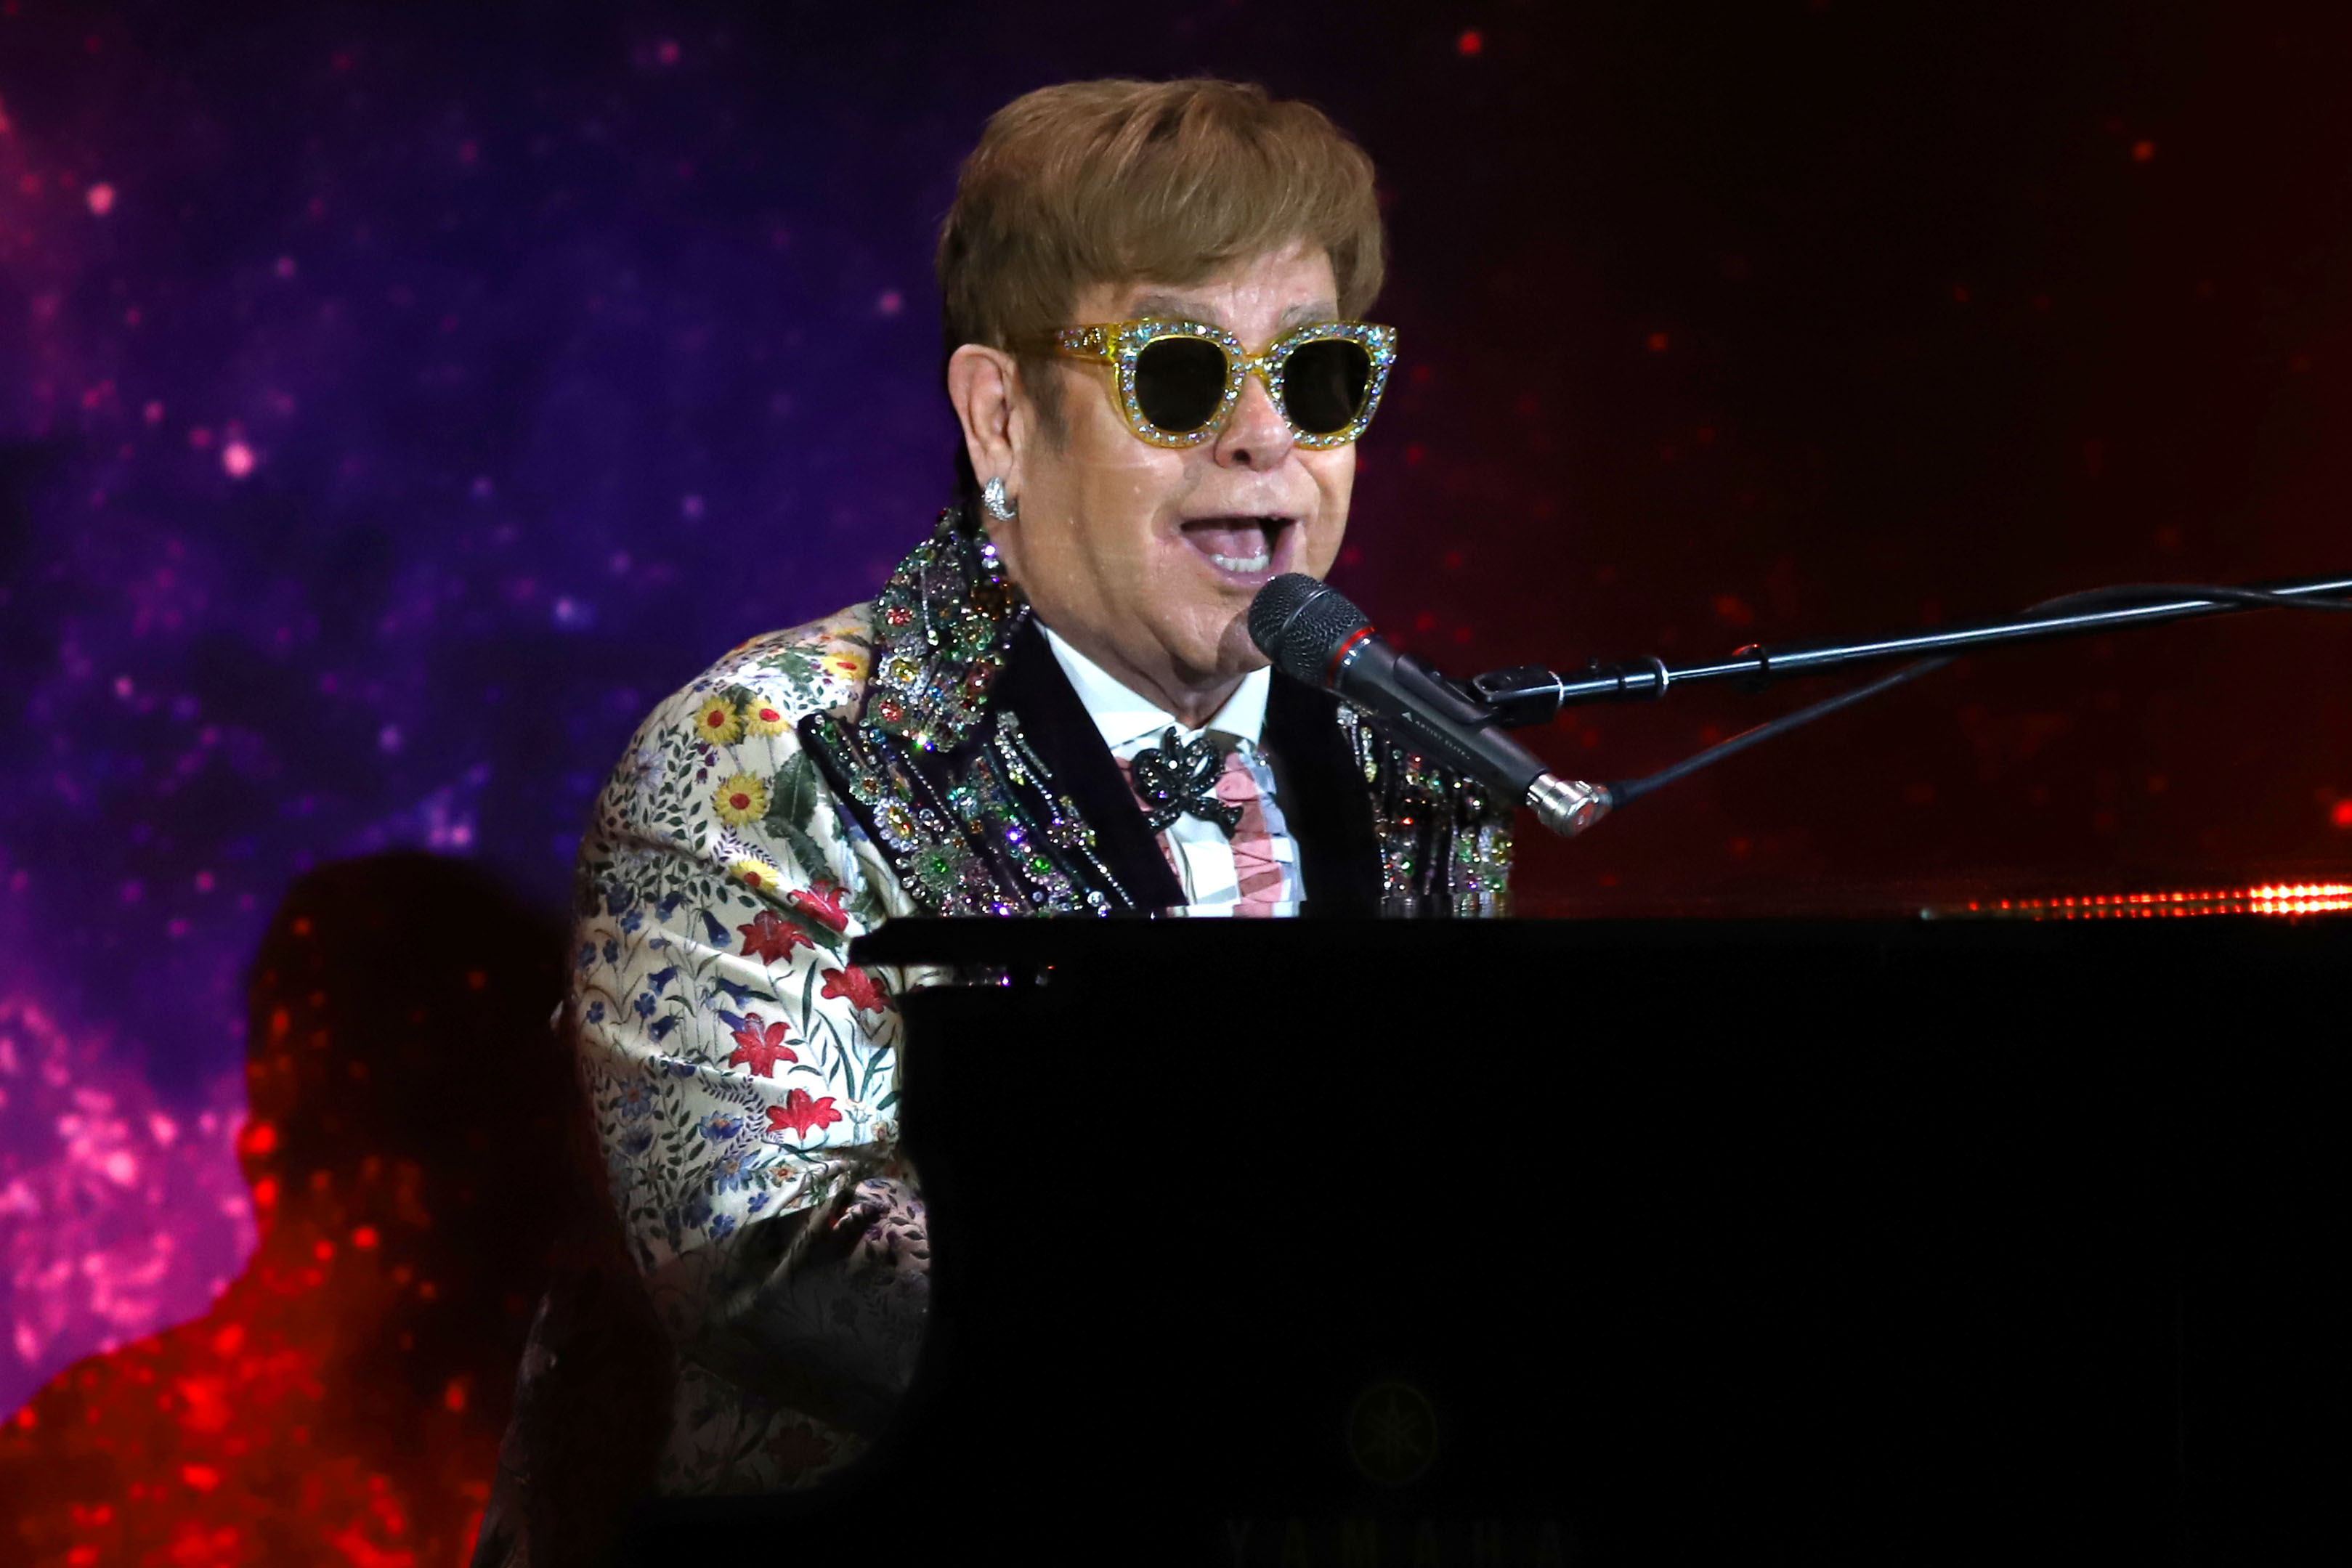 Elton John Christmas Song.Story Behind The Christmas Song Elton John S Step Into